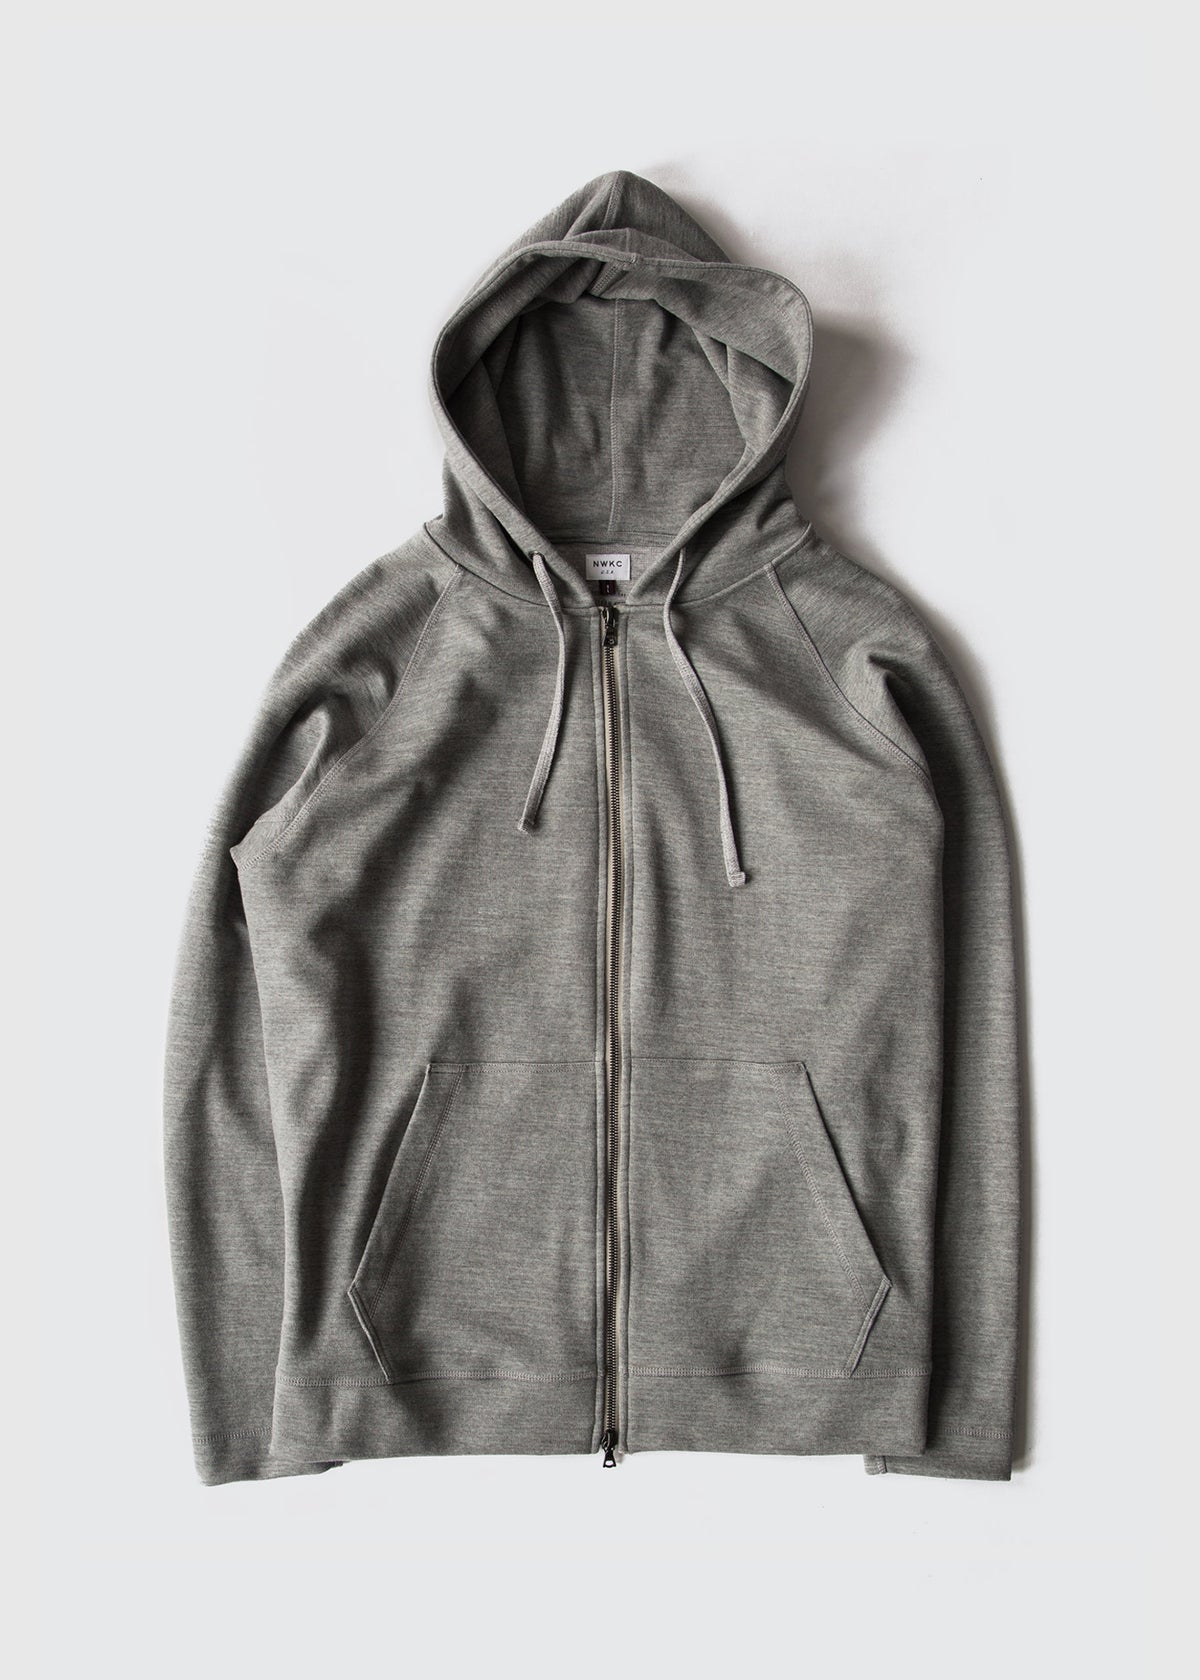 006 - HOODED ZIP - FEATHER GRAY - Wilson & Willy's - MPLS Neighbor Goods